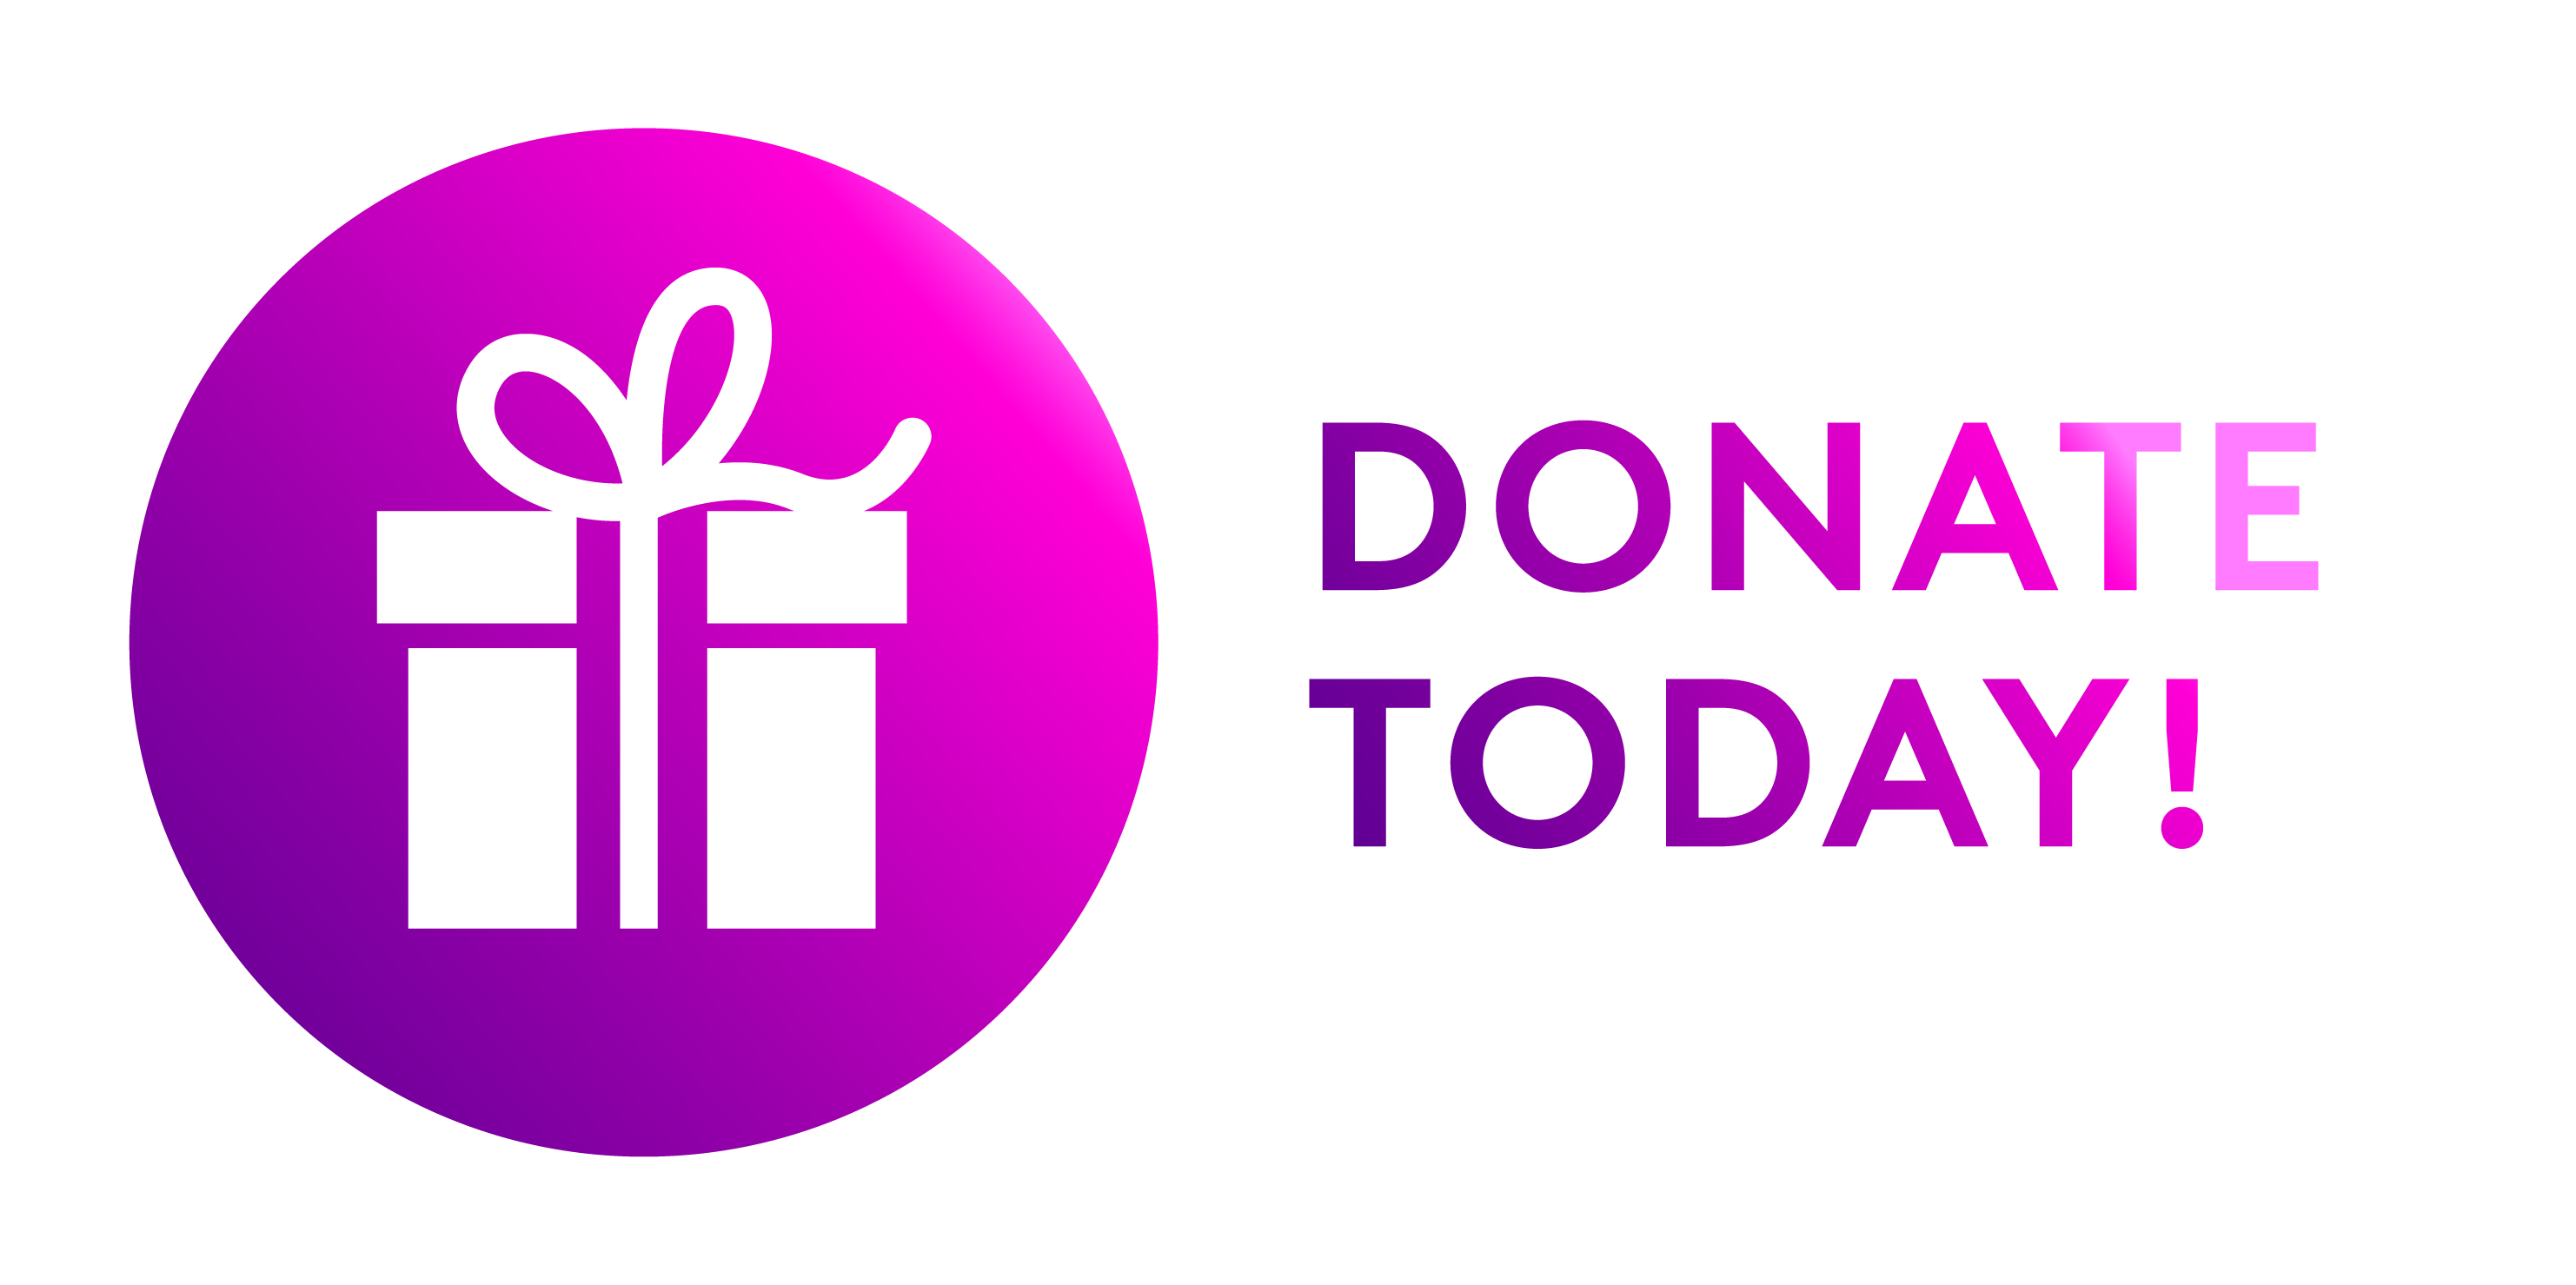 fusion_donate_today